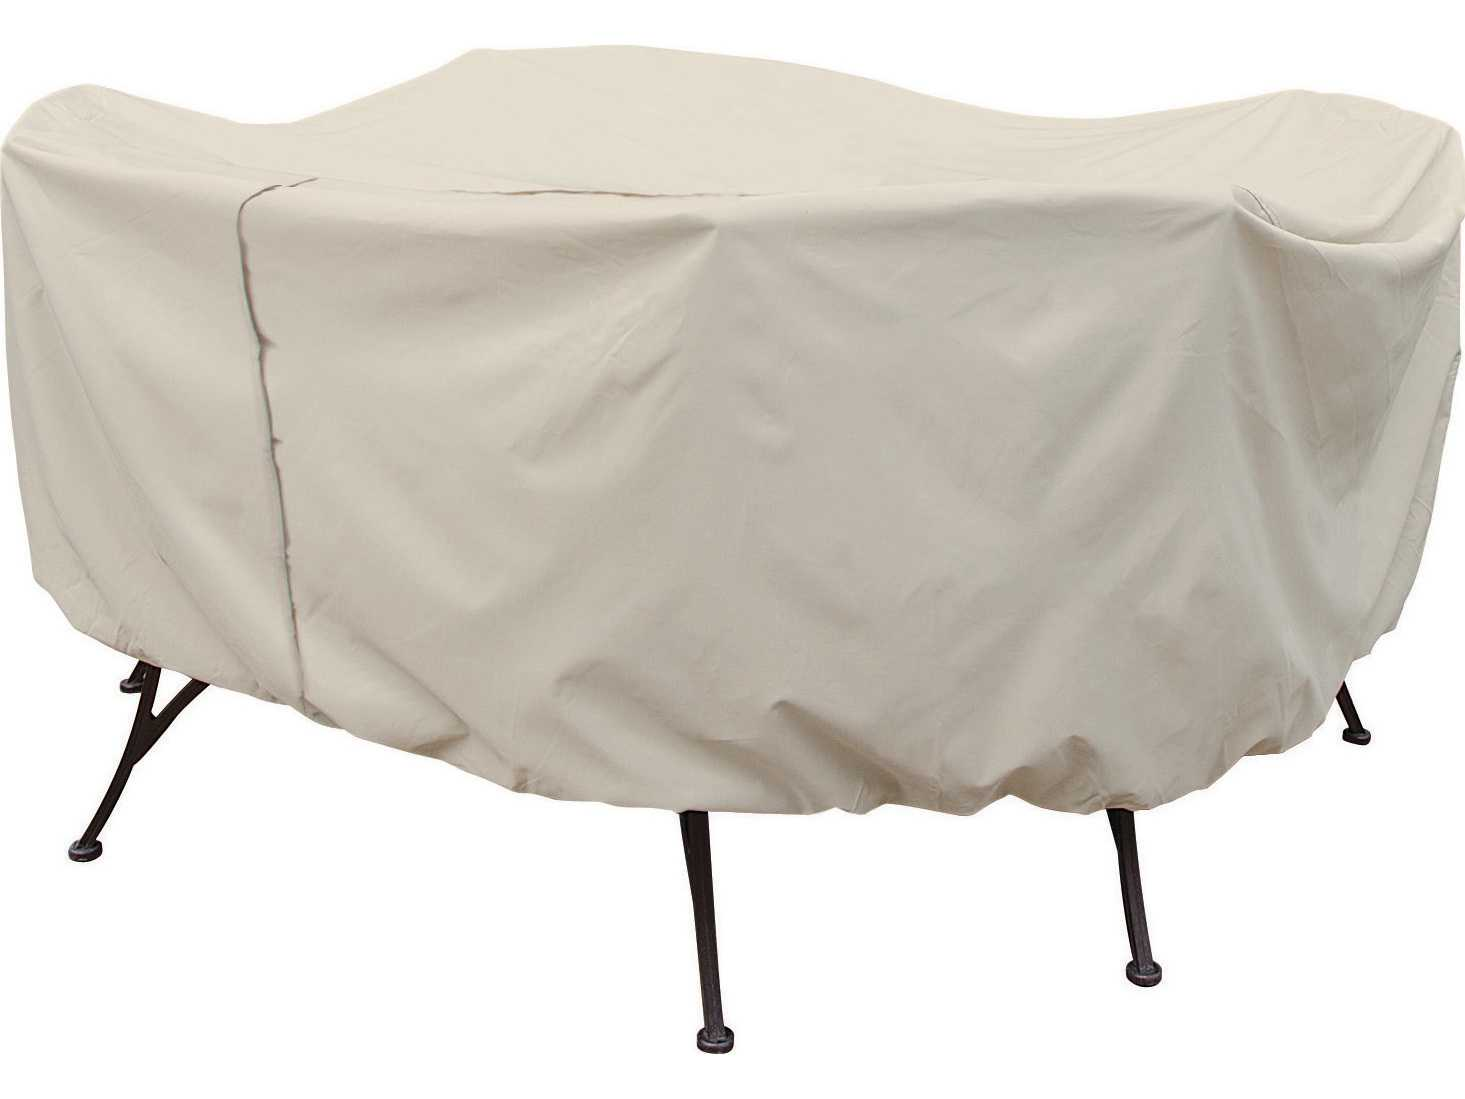 spotlight outdoor chair covers nichols and stone windsor treasure garden 48 round table chairs cover with